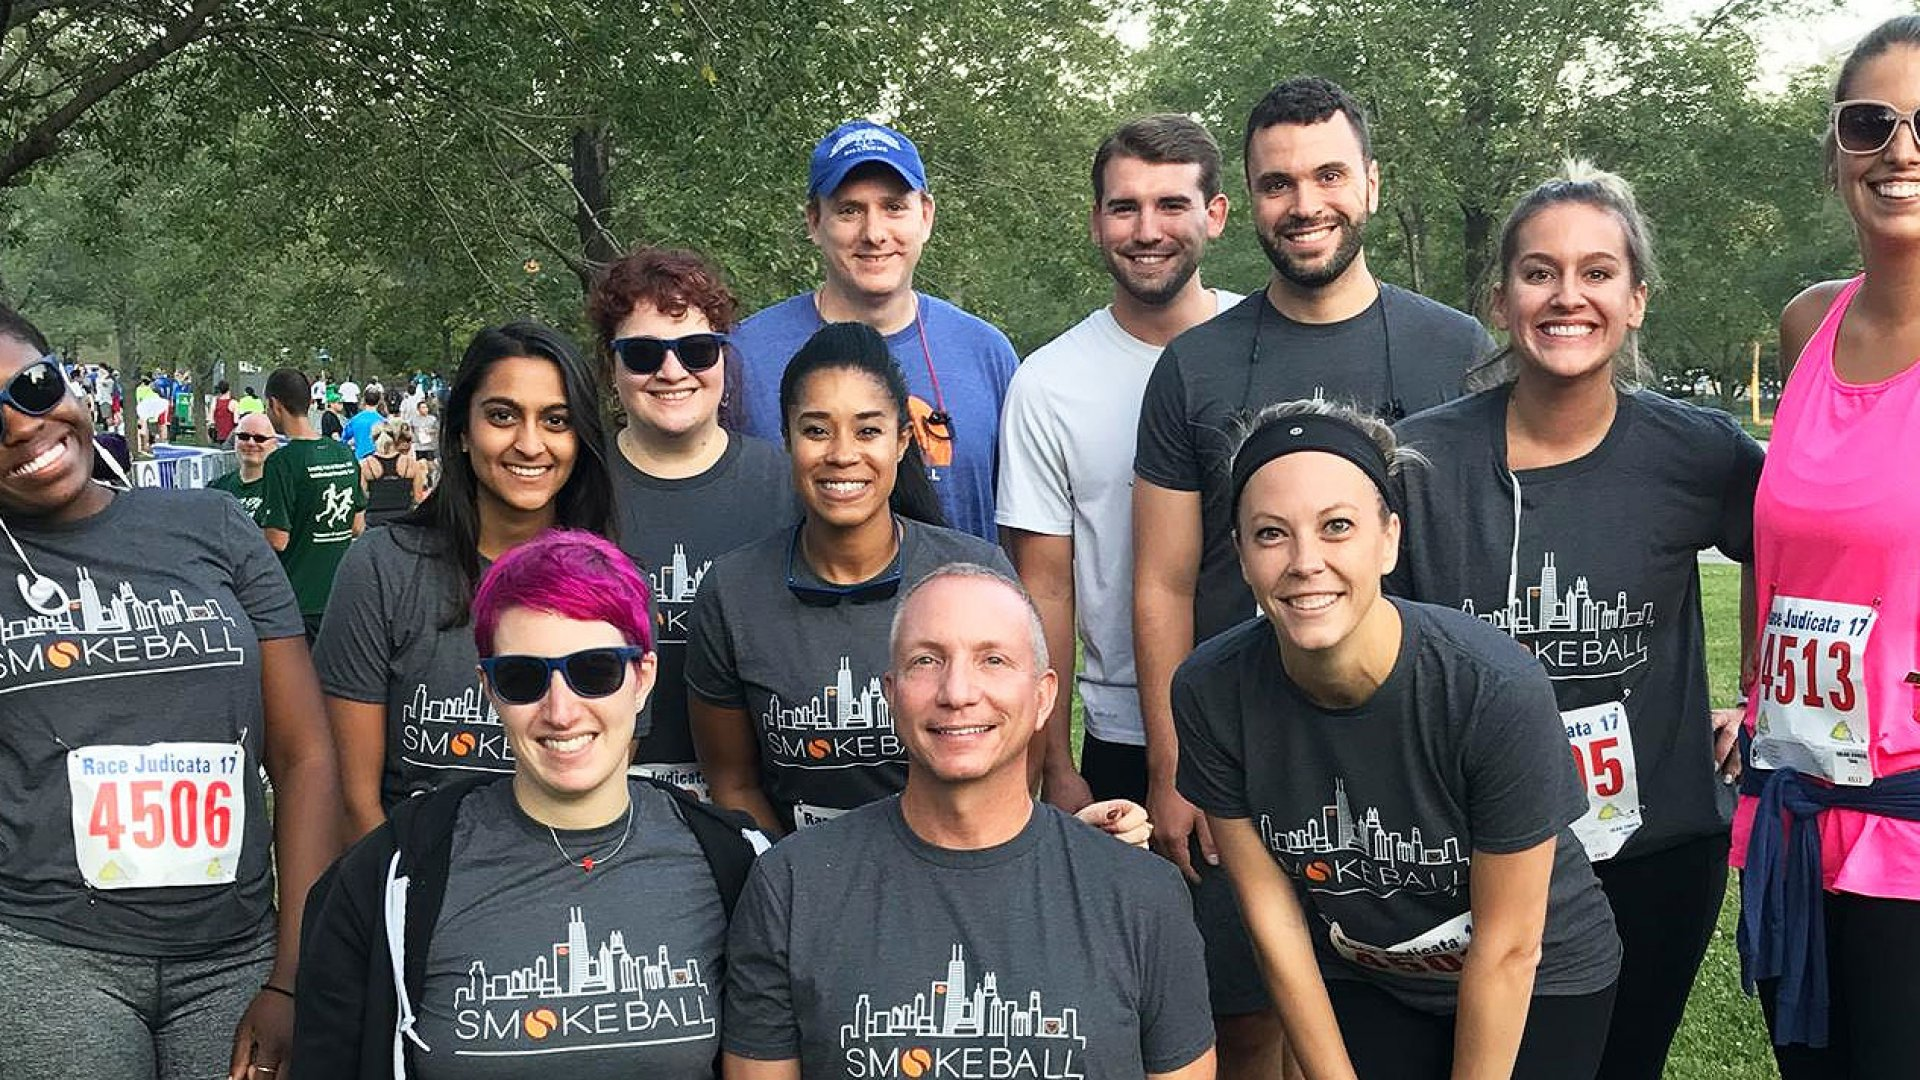 Part of the Smokeball team participates in a race.